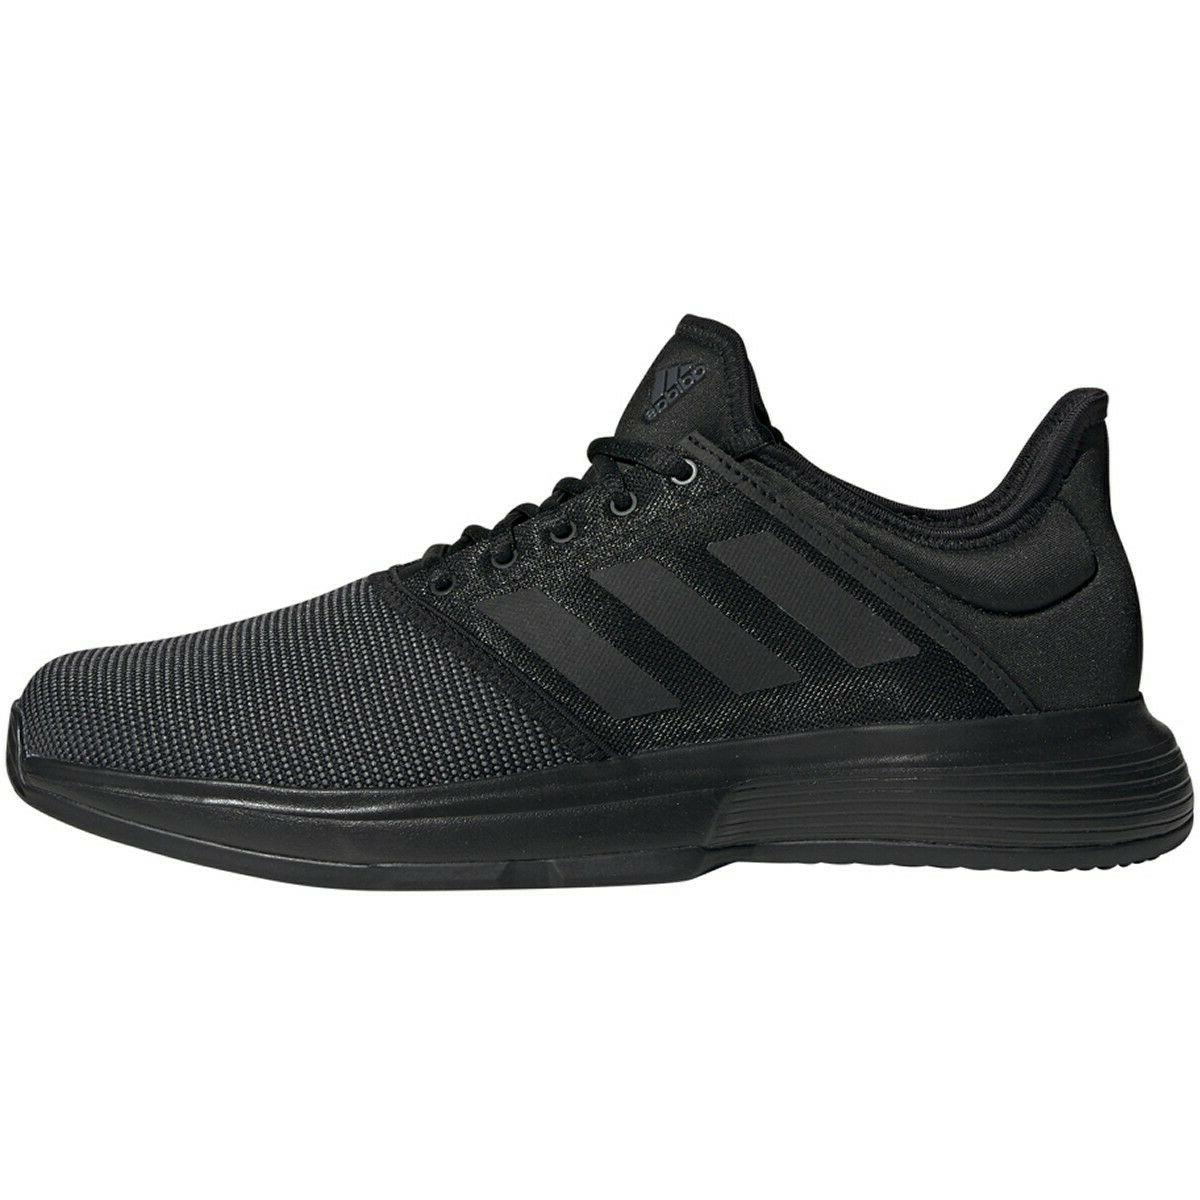 mens gamecourt black sport tennis athletic court